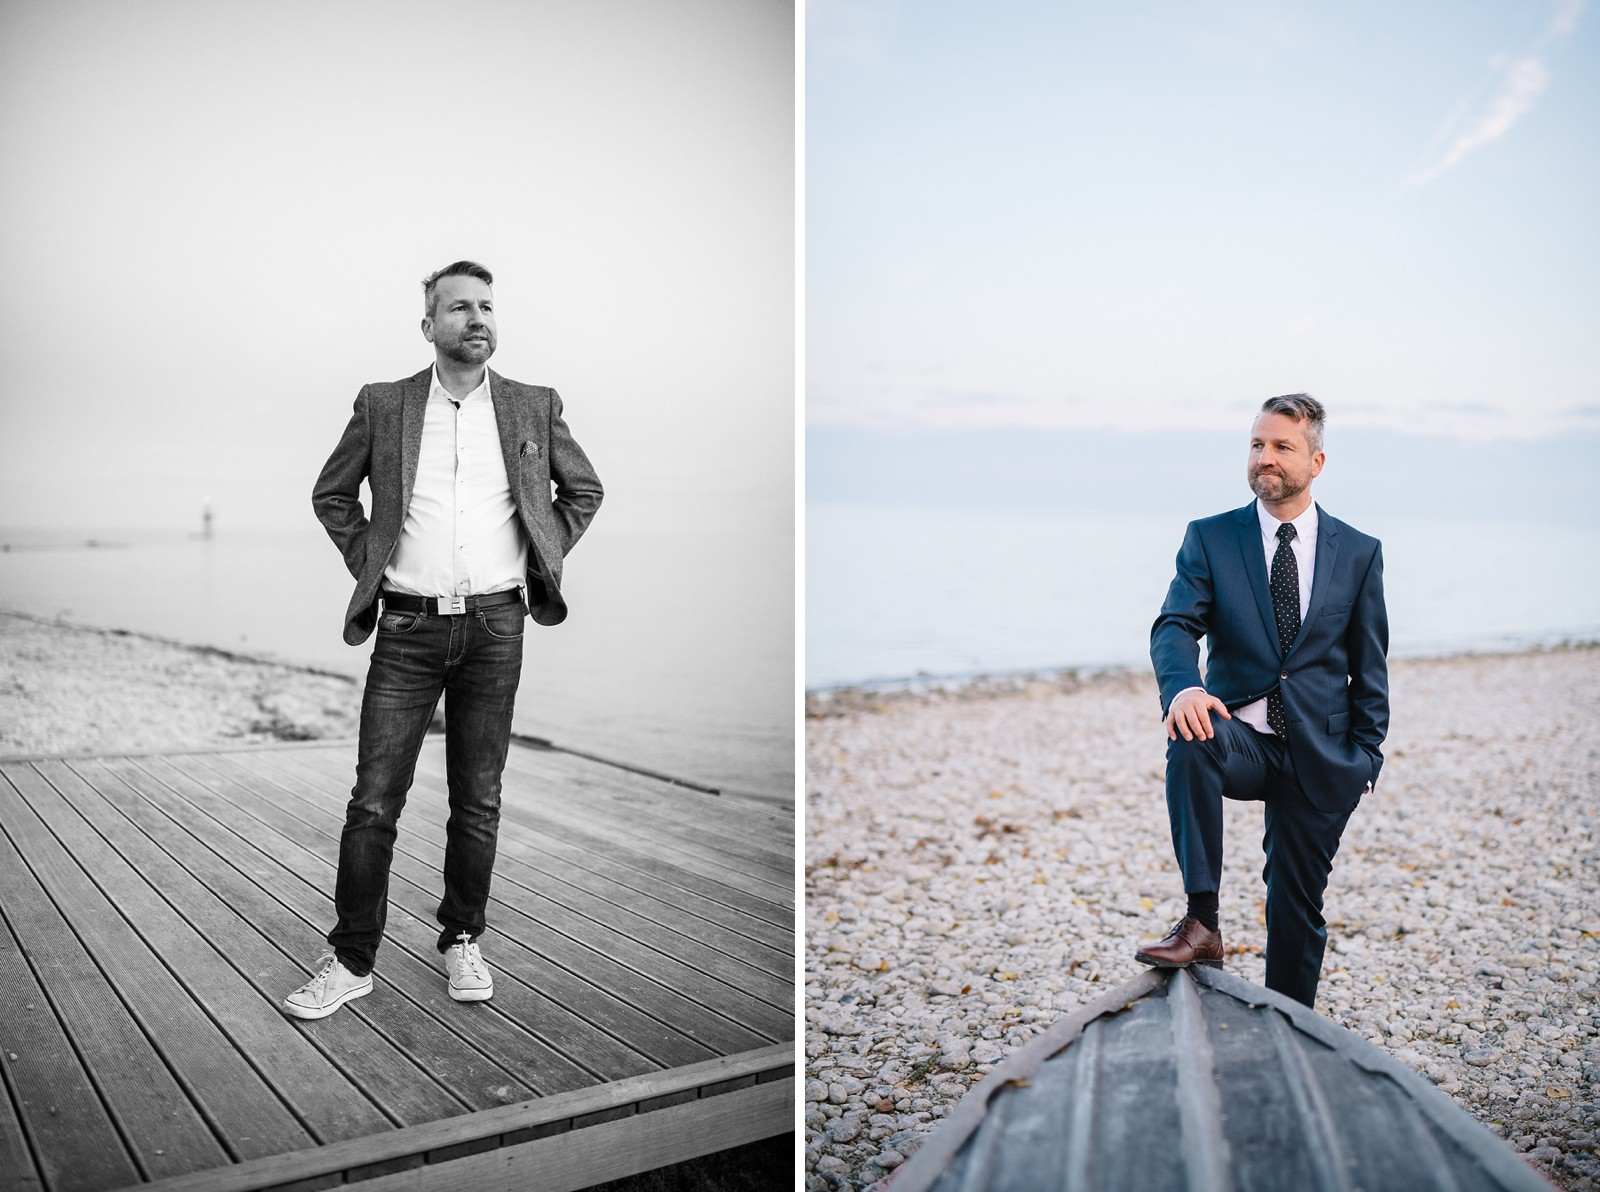 Fotograf Konstanz - Business Portrait Shooting at Lake Constance  - 4 -